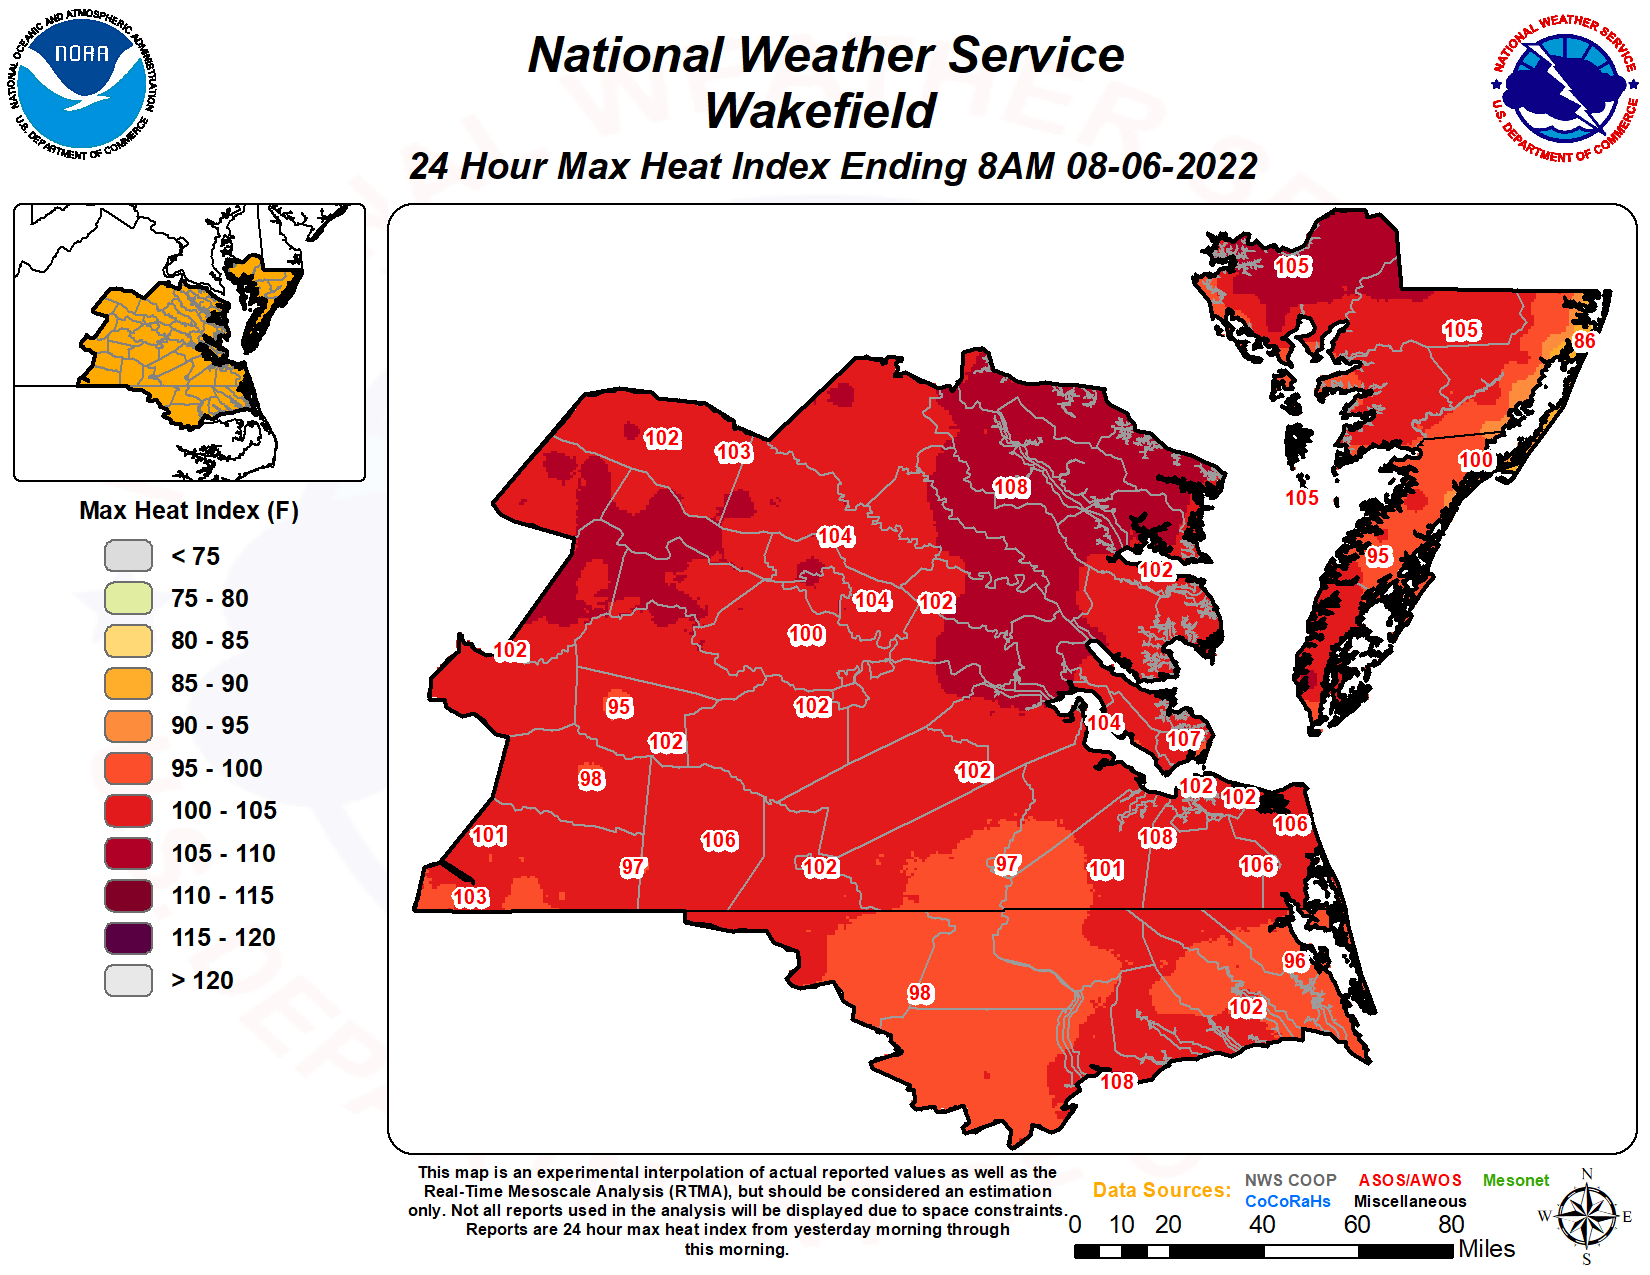 Daily Maximum Heat Index